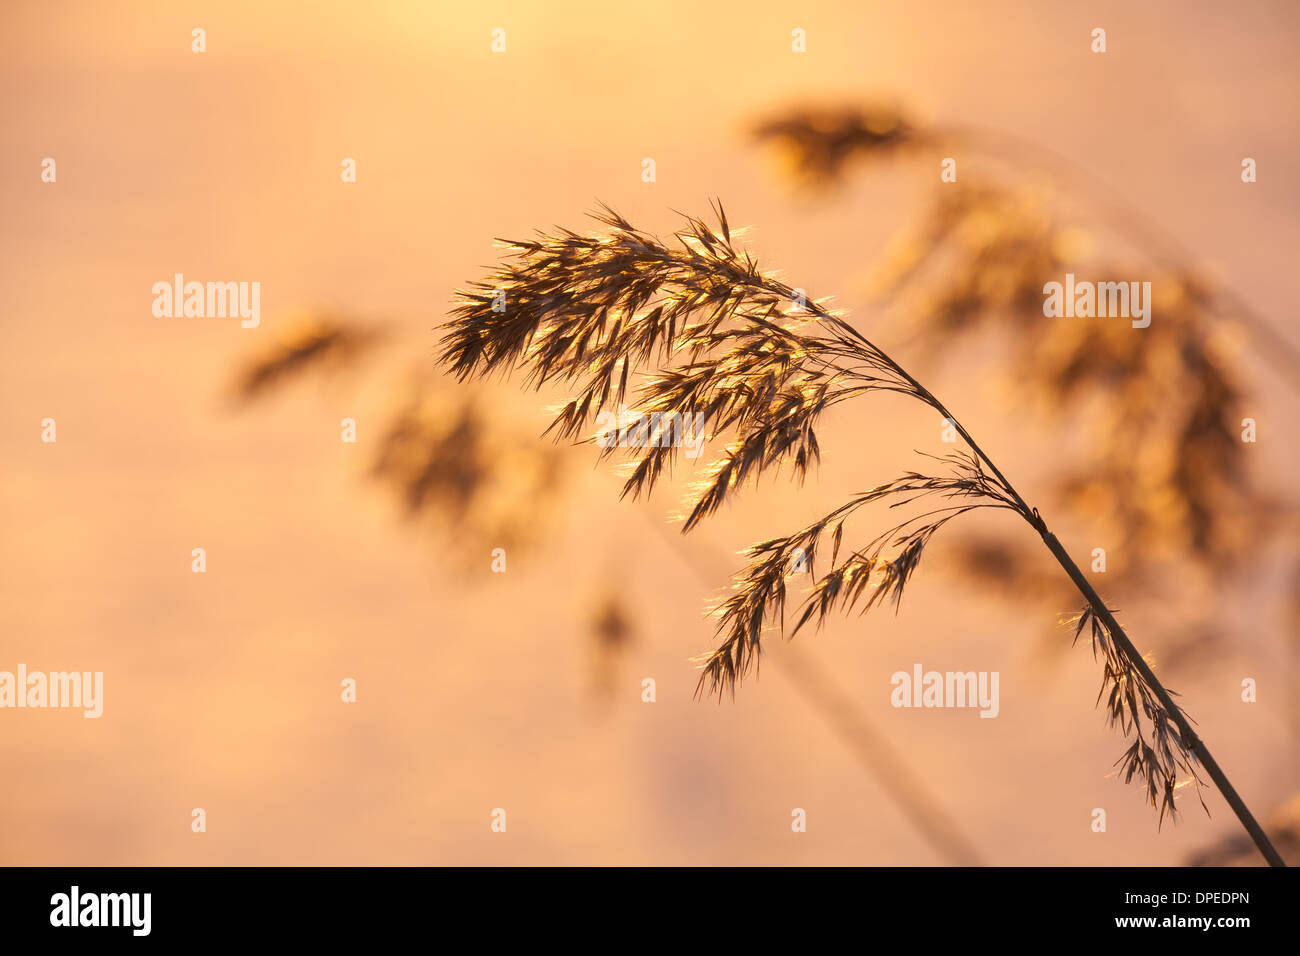 Common reed - Stock Image